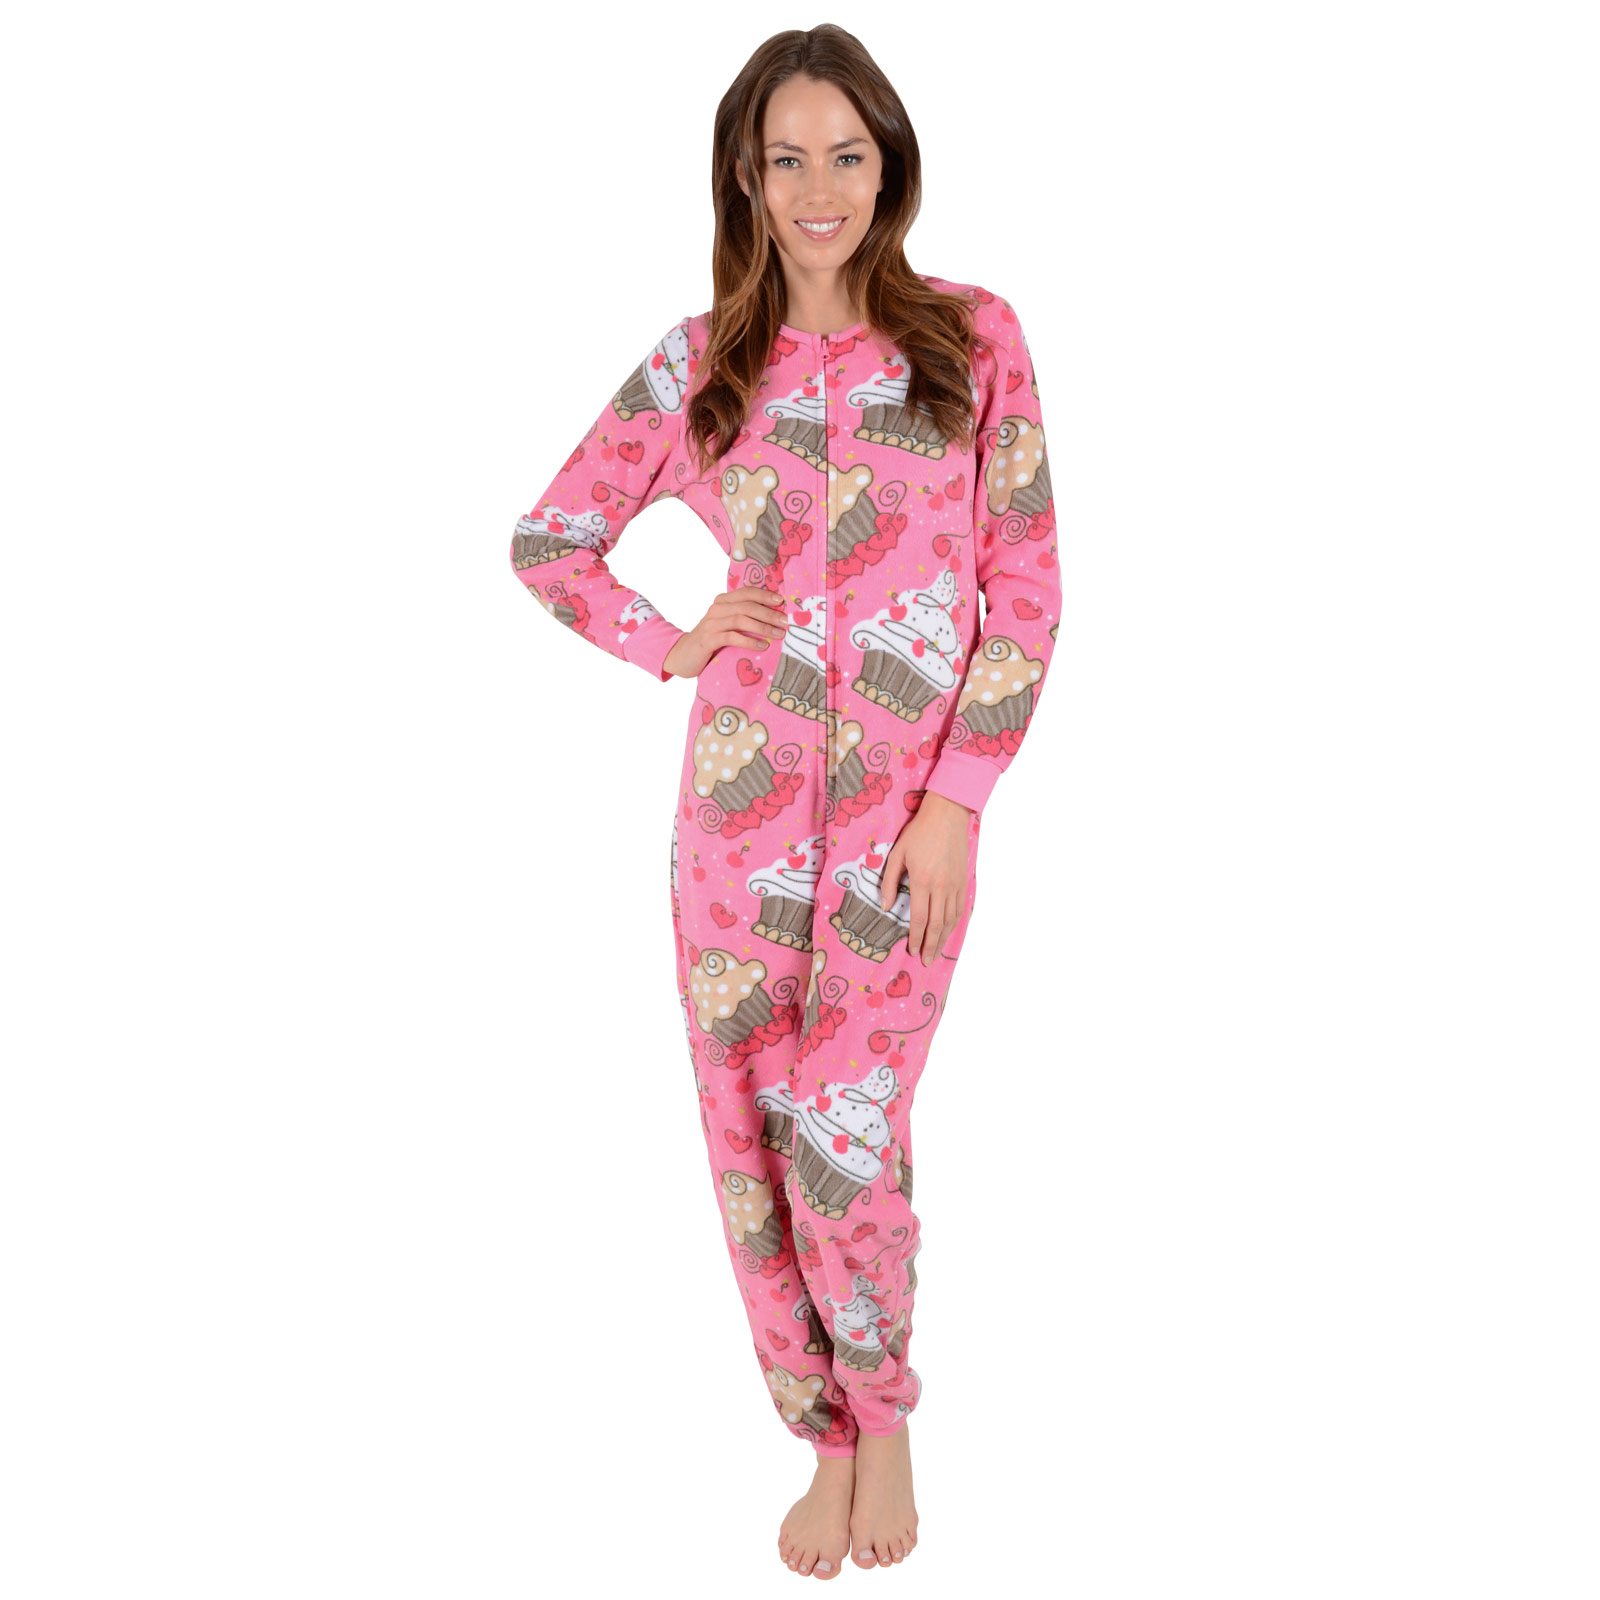 dcdcc8fac4220 Ladies Fleece All In One Piece Pyjamas Jump Sleep Suit Onesie PJs ...